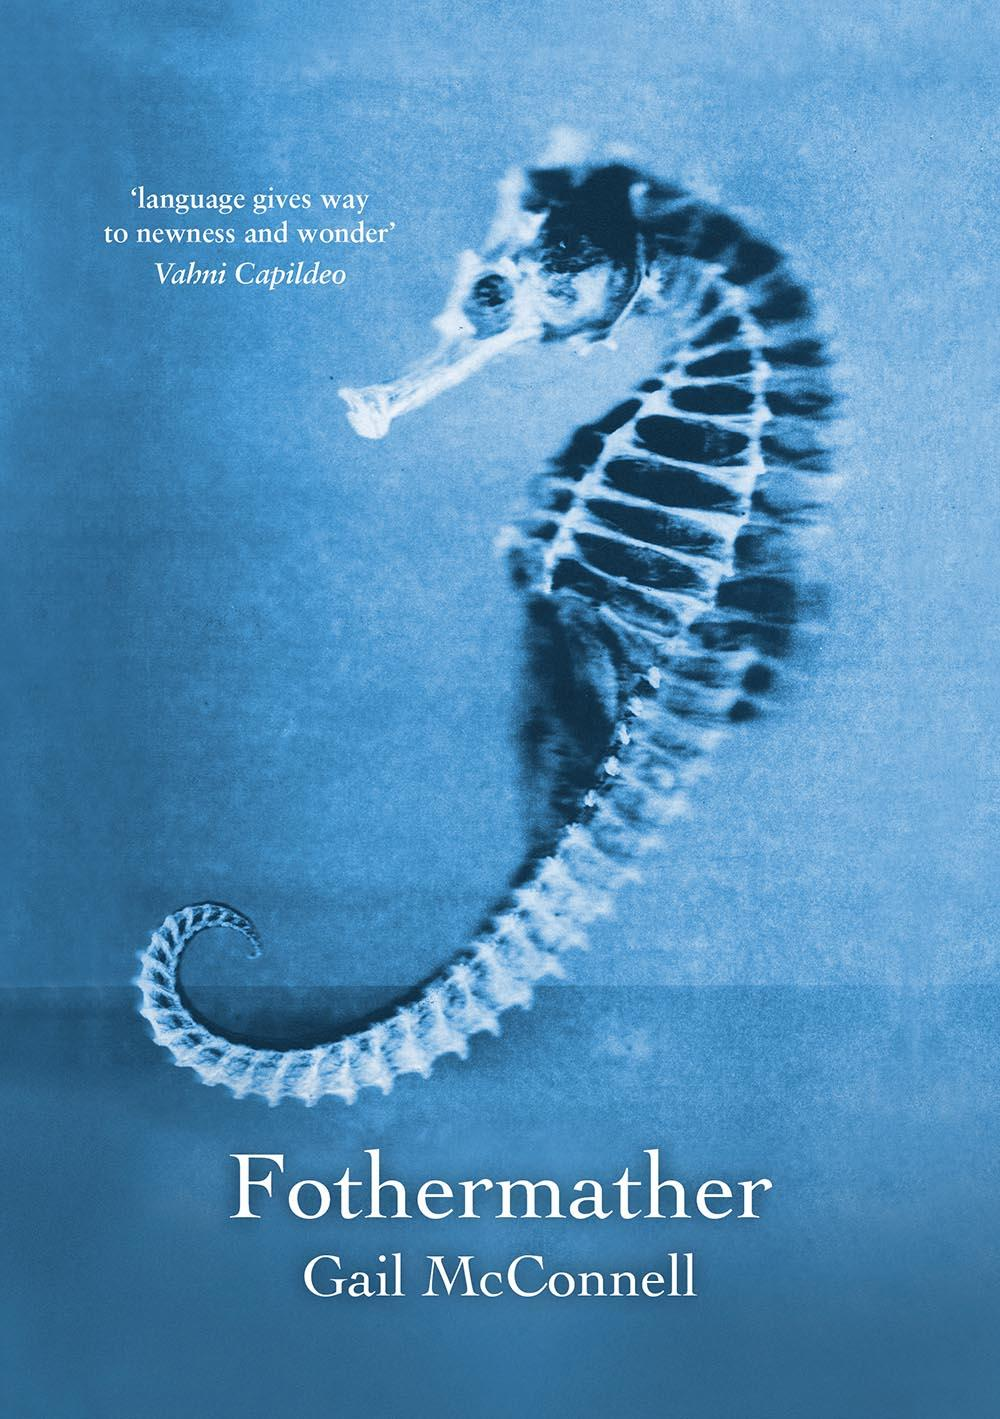 The cover is sea blue with a photo of a seahorse (looking a little skeletal) taking up most of the space. Light on the sea-horse is white. The pamphlet title is white lowercase about an inch from the bottom, with the name of the author somewhat smaller below it, both centred. There is a puff quote from Vahni Capildeo top left, just in front of the seahorse's nose.